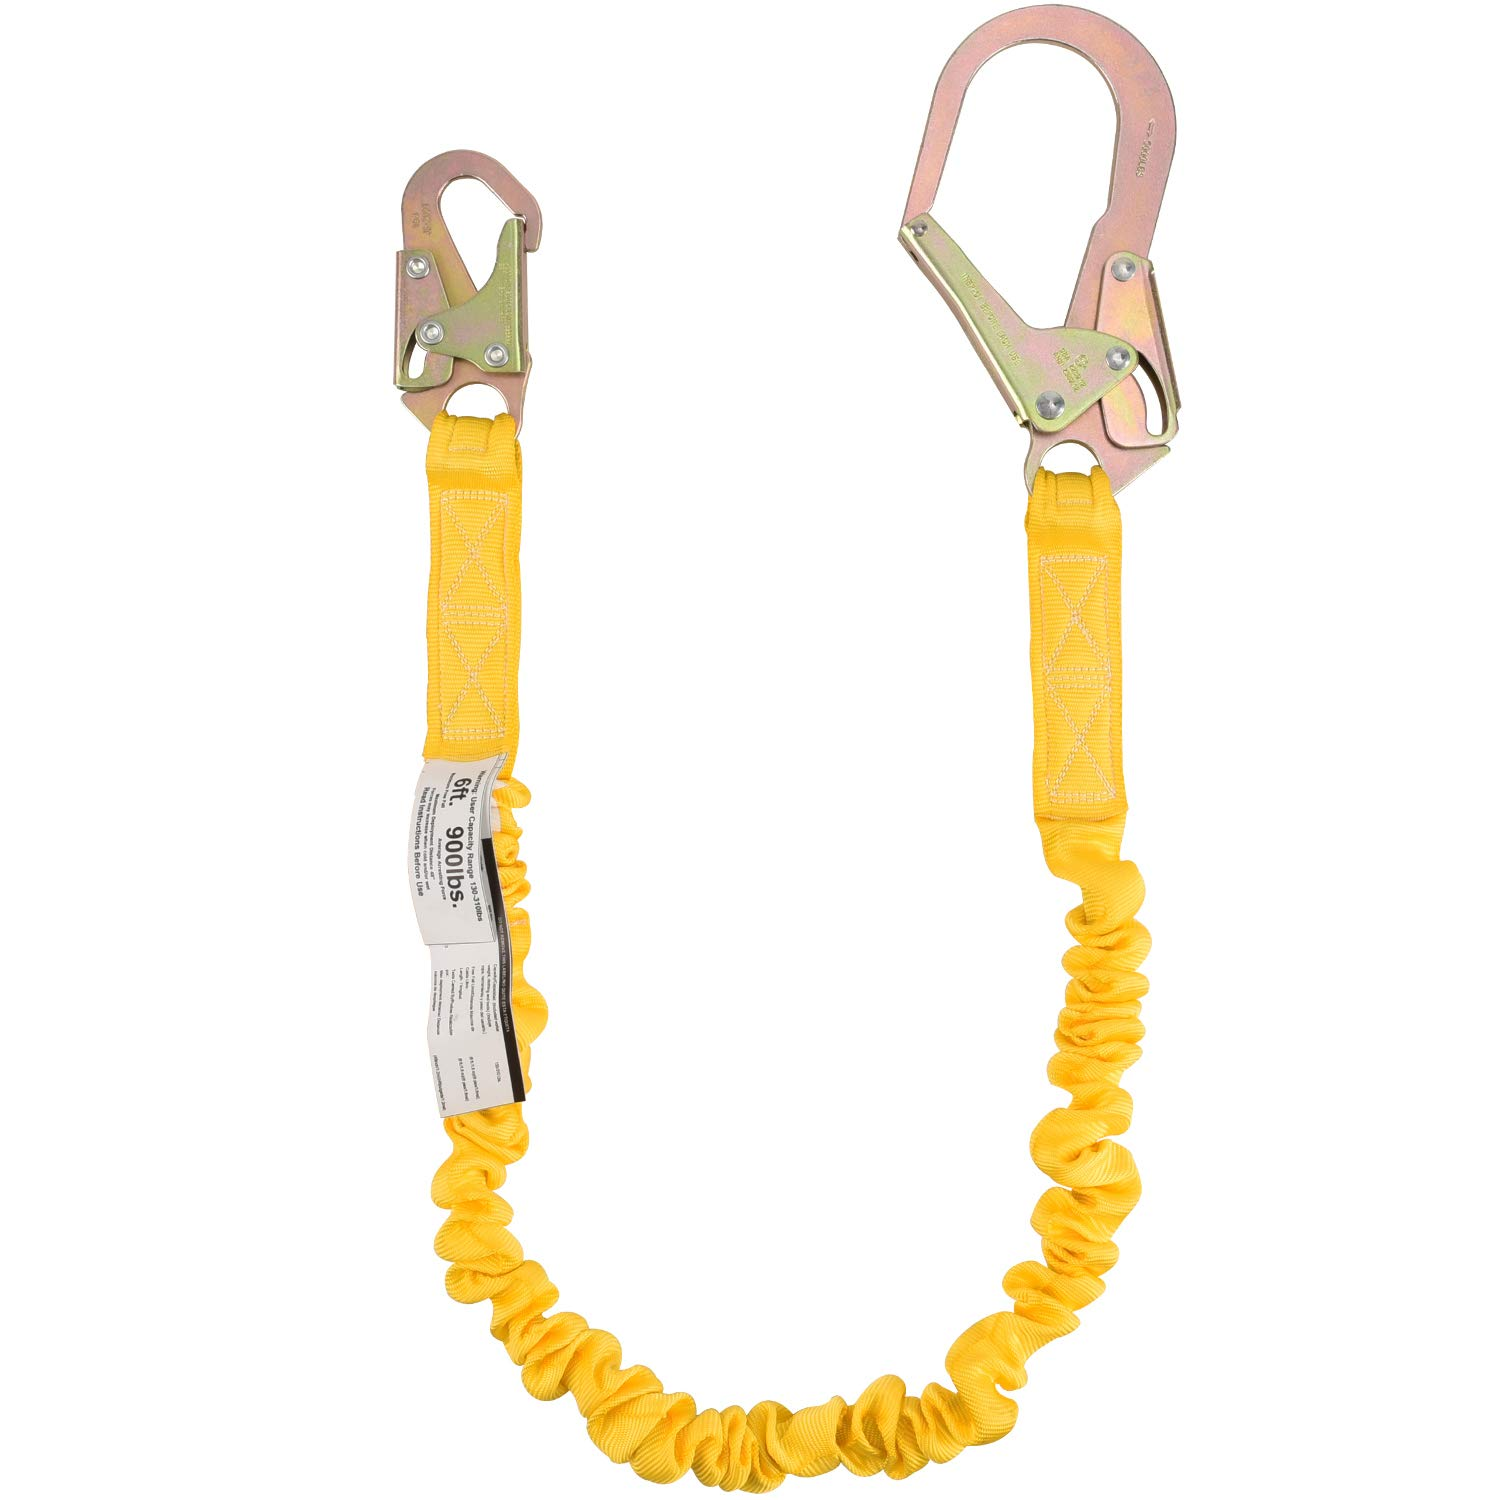 WELKFORDER Single Leg 6-Foot Fall Protection Internal Shock Absorbing Stretchable Safety Lanyard with Snap & Rebar Hook Connectors ANSI Complaint by WELKFORDER